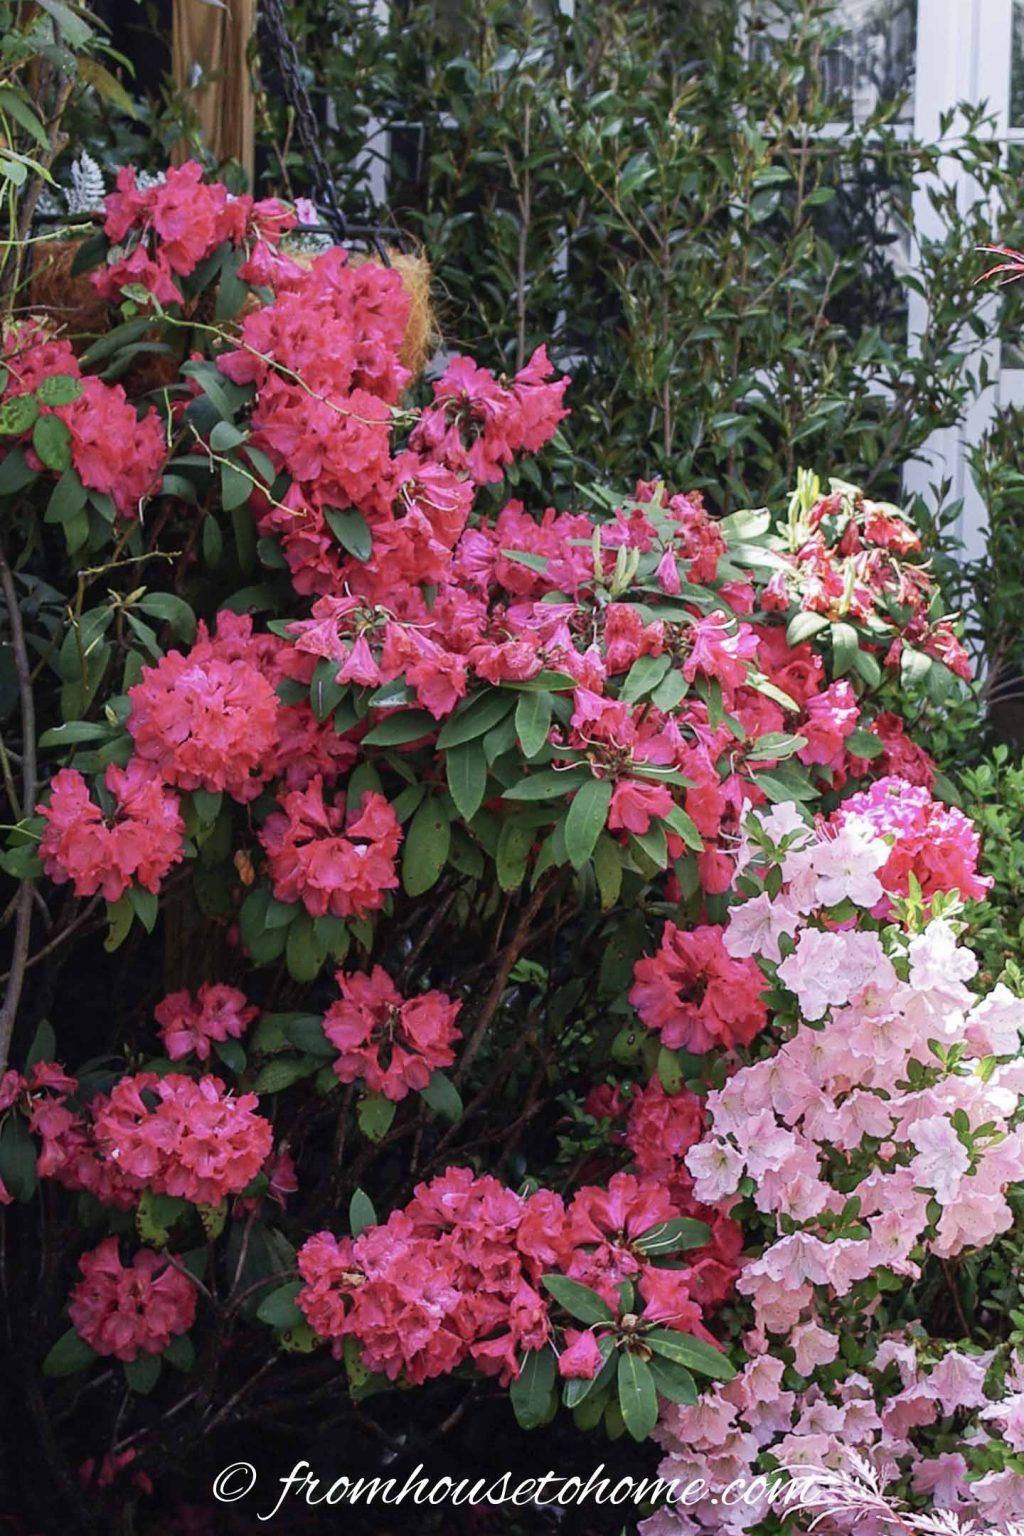 Rhododendron Care How To Grow Beautiful Rhododendrons And Azaleas Gardening From House To Home In 2020 Rhododendron Care Fairy Garden Pots Plants Under Trees